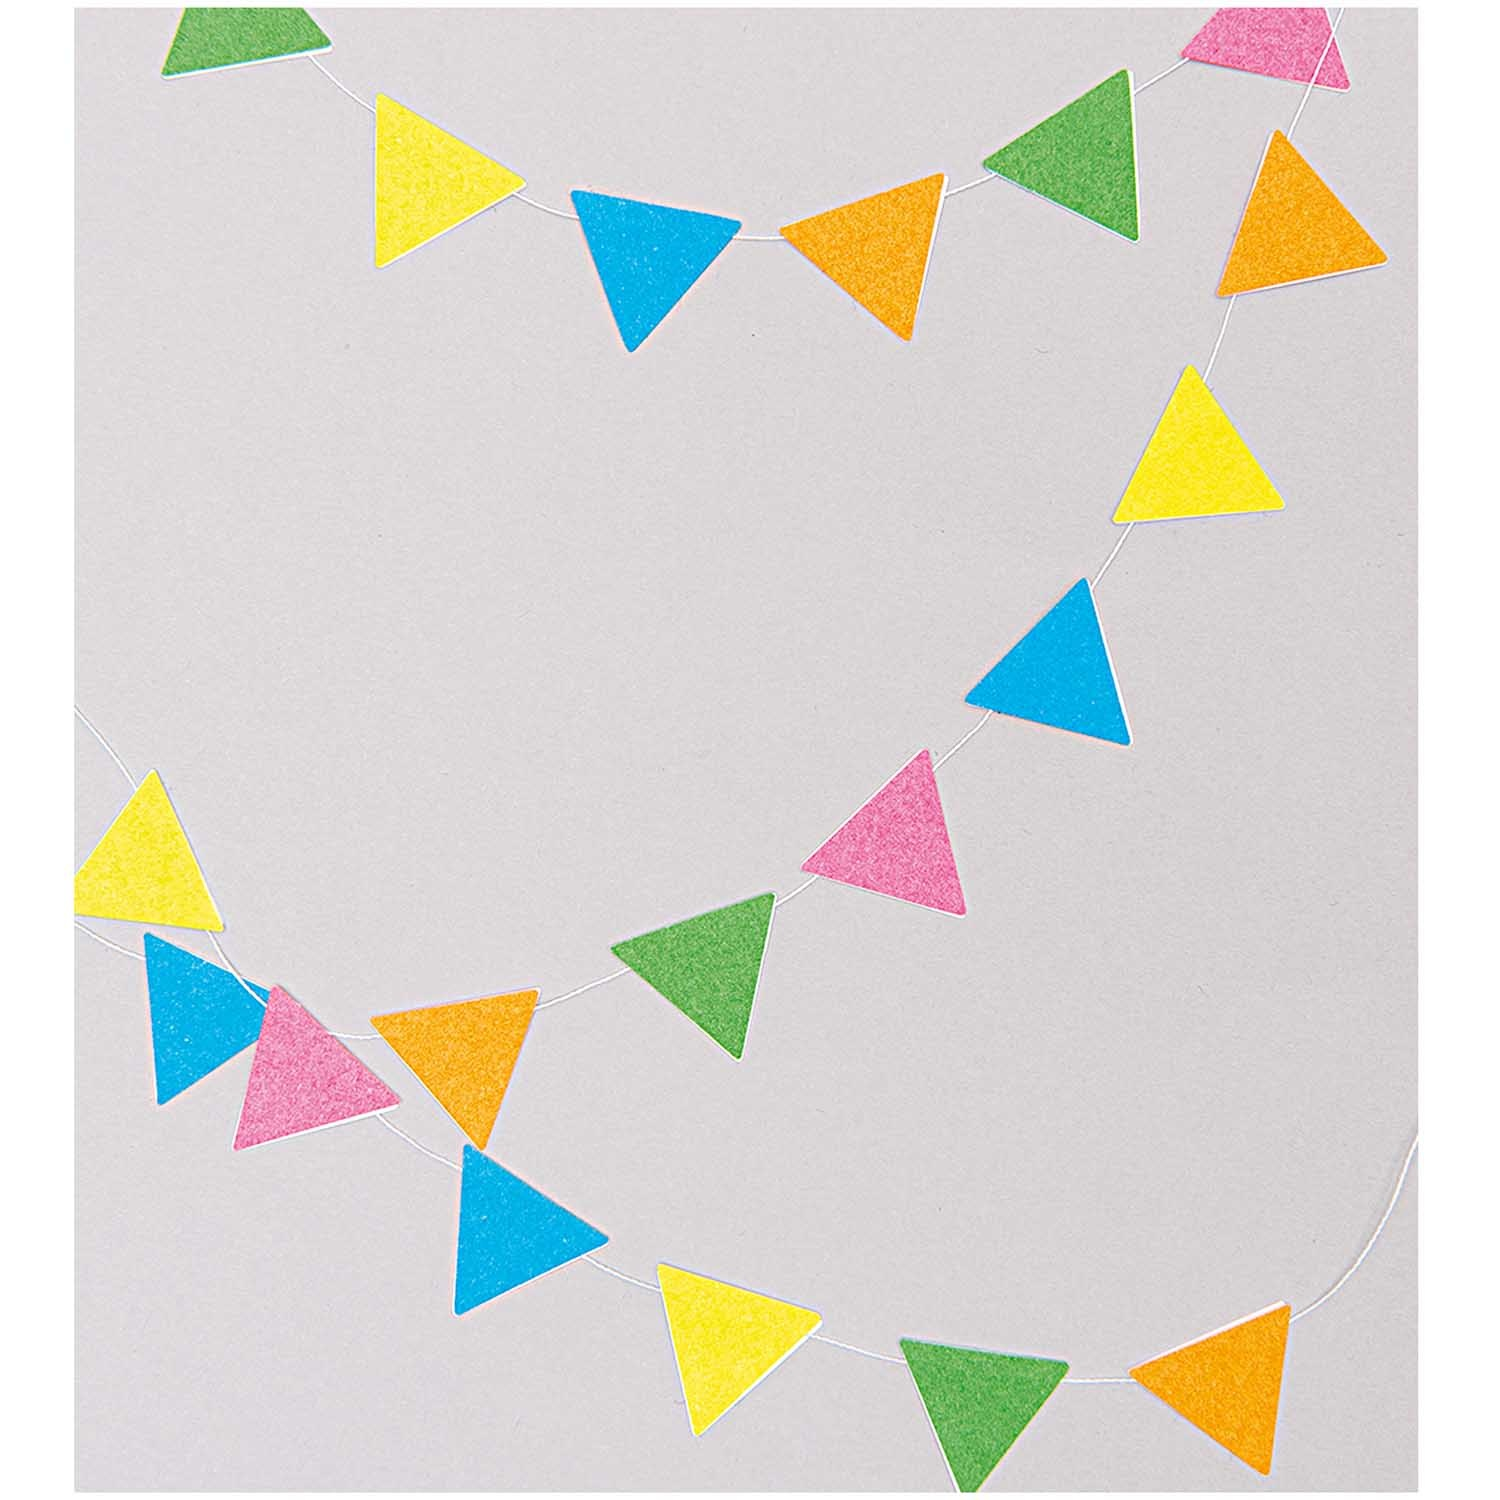 Rico NAY OFFICE STICKER, TRIANGLE FUCHSIA/ RED 4 SHEETS, 9,5 X 19 CM